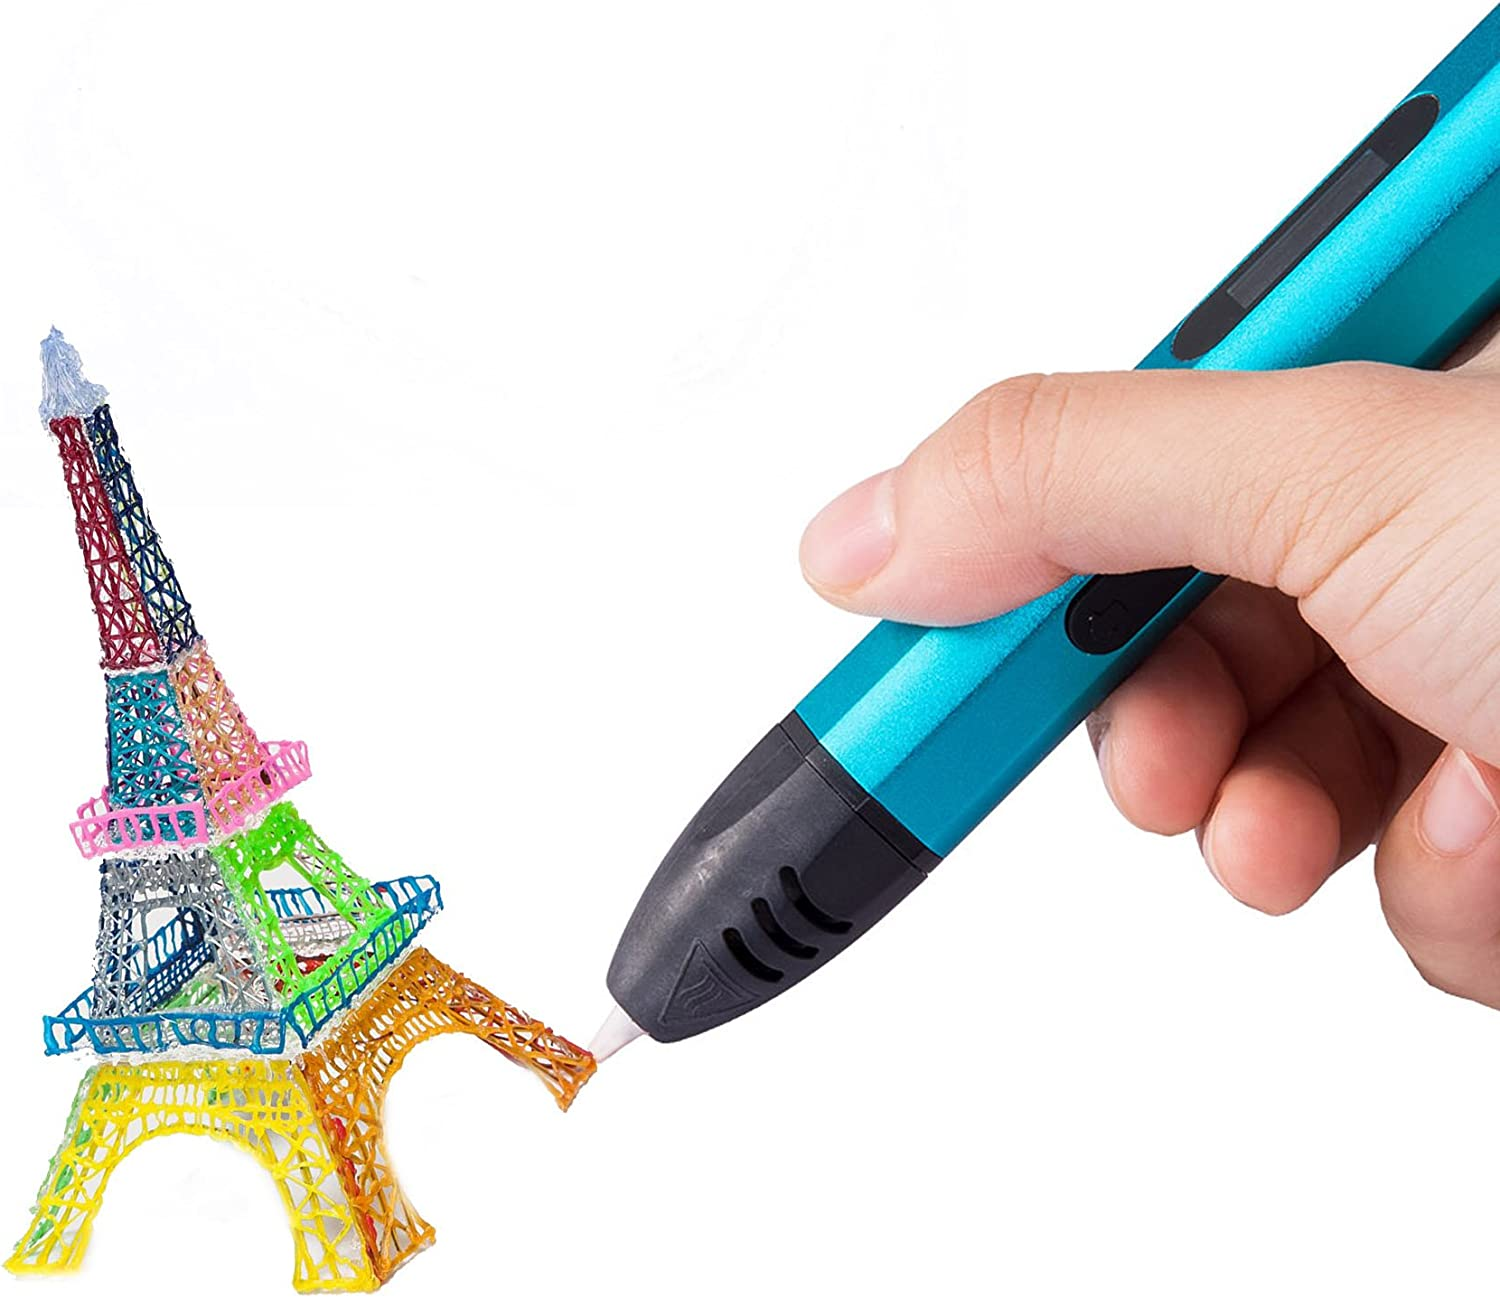 Green Arts 3D Printing Pen for Kids Crafts Easy to Use 1.75mm ABS and PLA Compatible ,Educational STEM Toy for Boys /& Girls,3D Drawing Pen to Drawing